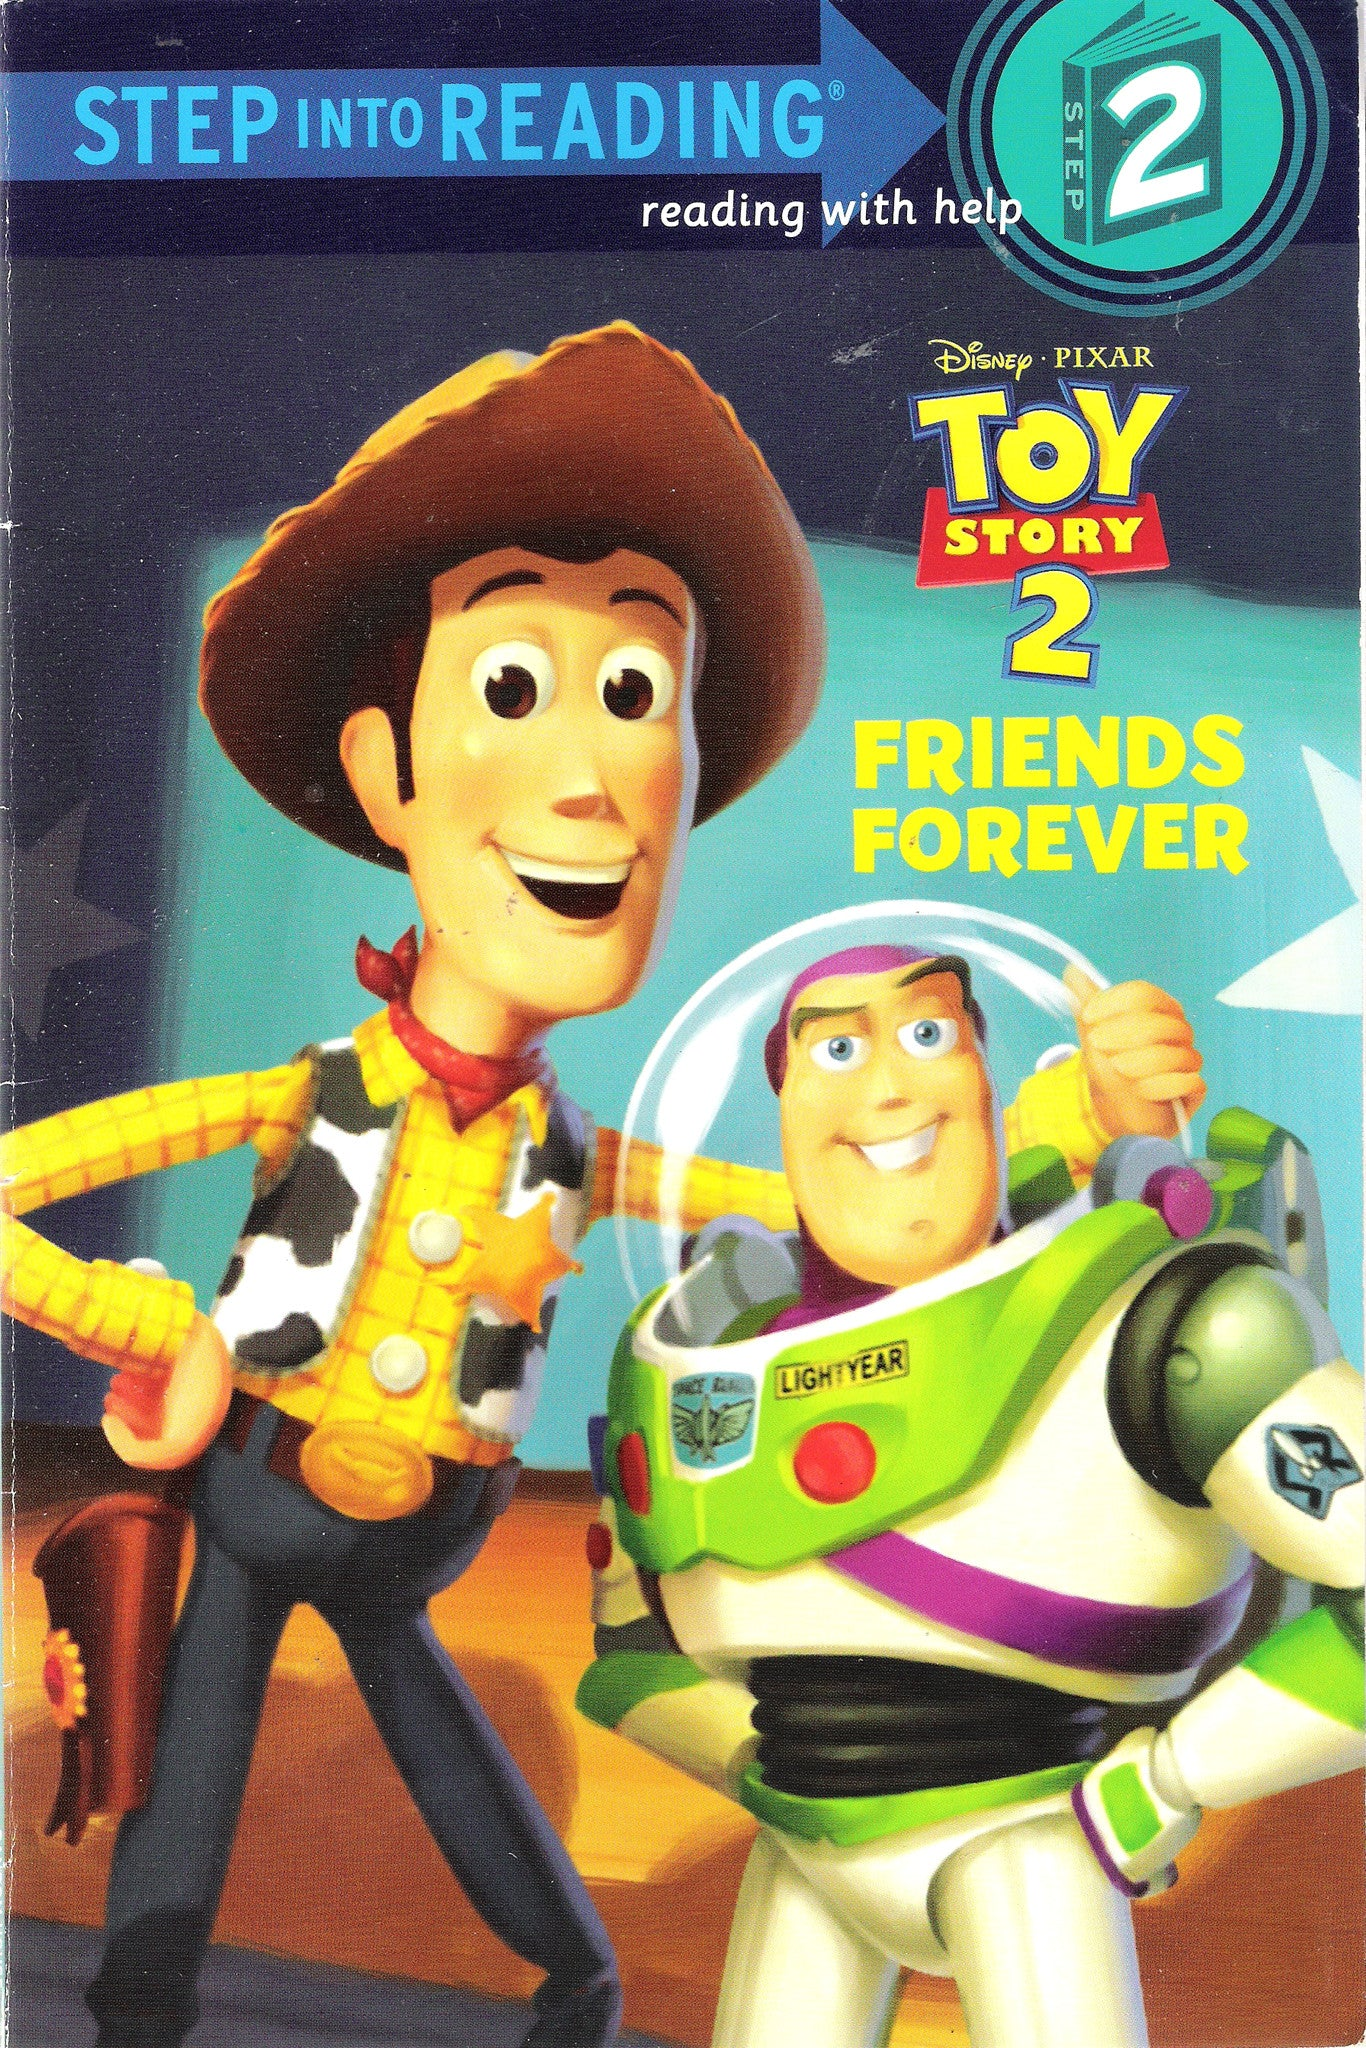 Friends forever - Toy Story 2